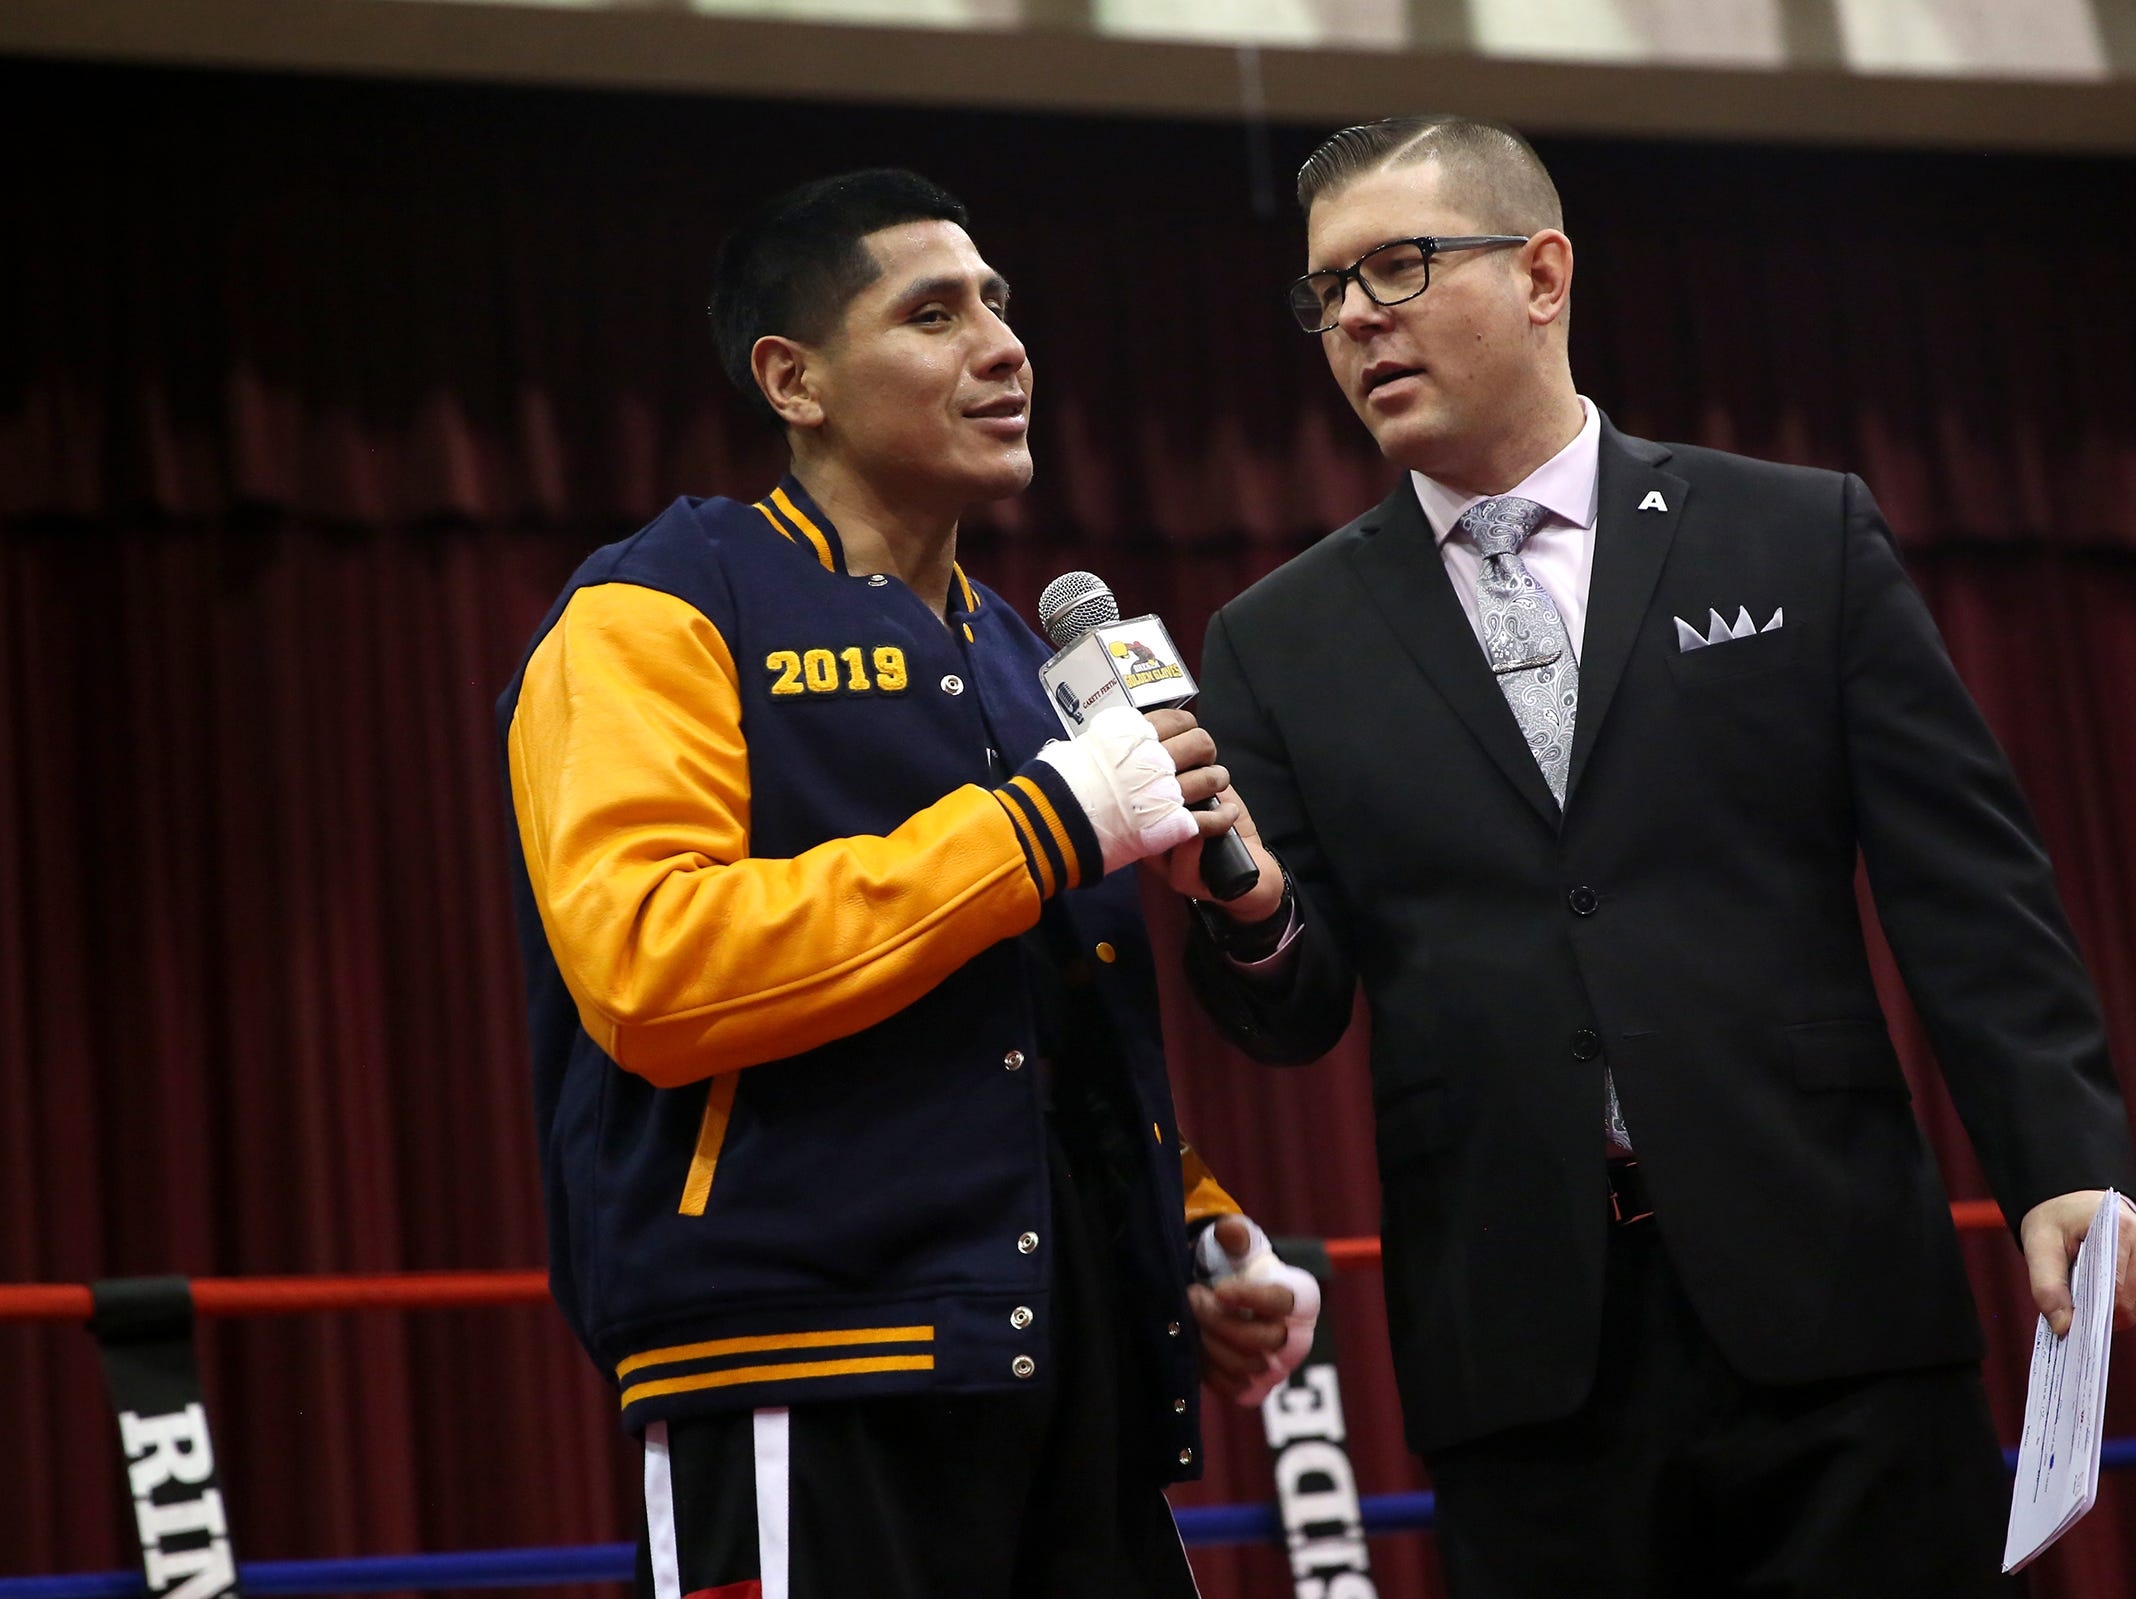 Poli Lopez of Keizer is pronounced the winner in his fight at the Oregon Golden Gloves championship matches at the Salem Armory on Saturday, Feb. 2, 2019.